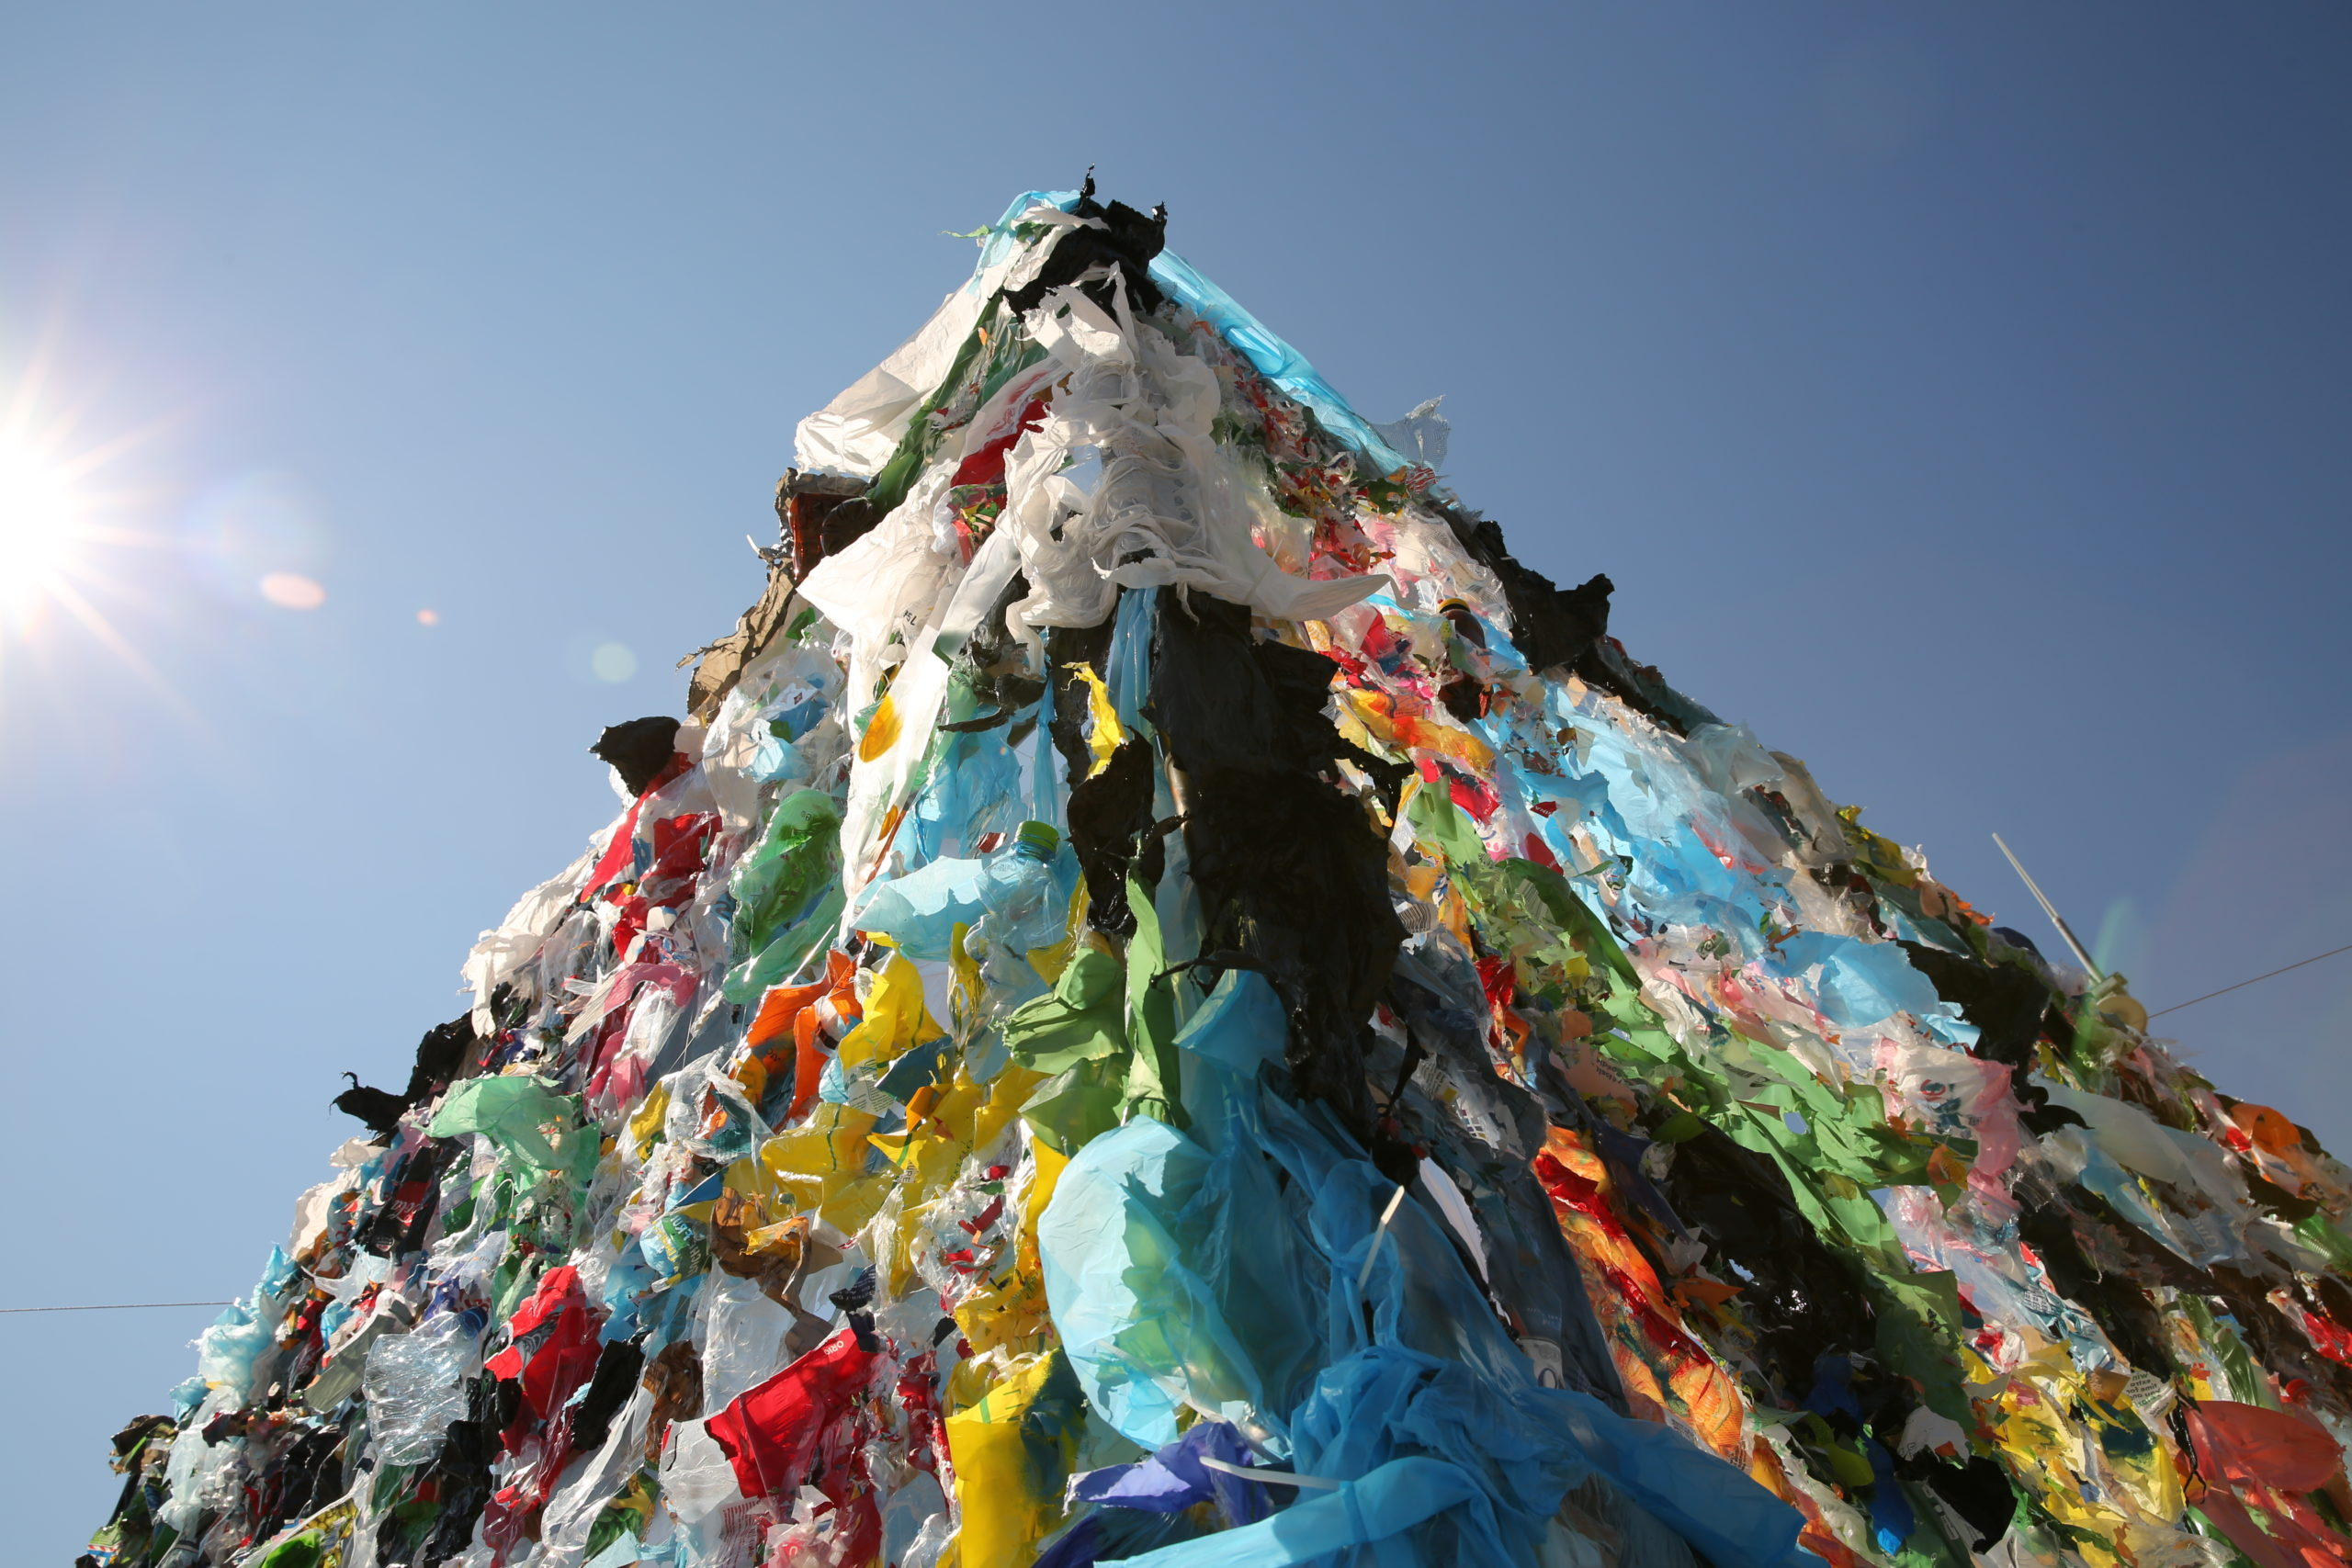 """The M-Cube was a plastic """"sculpture"""" installation which was placed in the Place des Nations in September 2018 to raise awareness of plastic waste, on the margins of the Basel Convention meeting which first """"decided"""" plastic amendments should be formulated and discussed."""